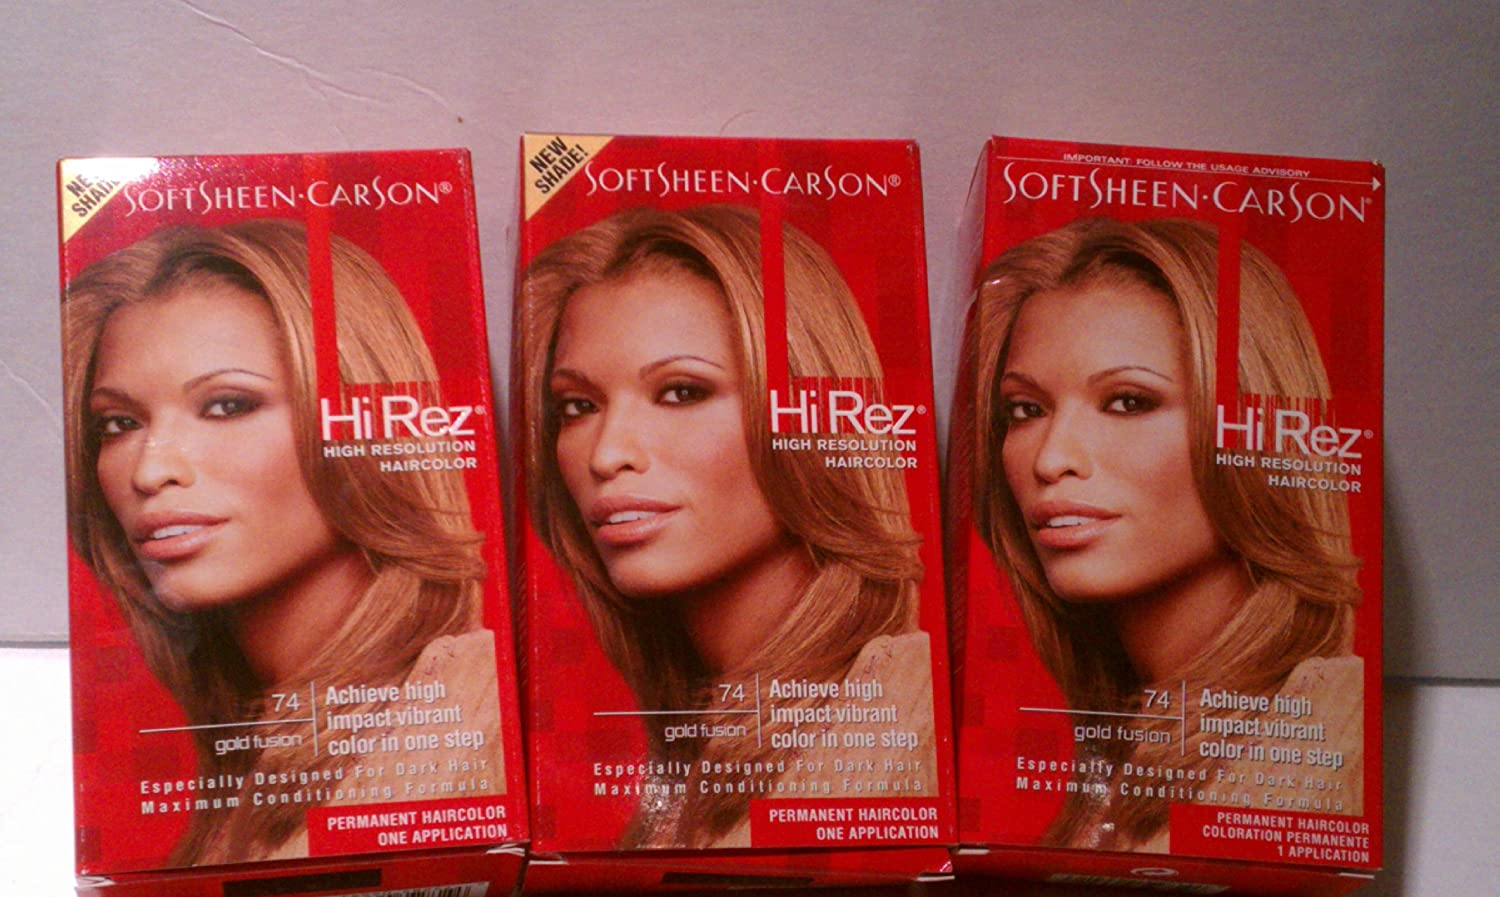 Amazon Soft Sheen Carson Hi Rez Gold Fusion Pack Of 5